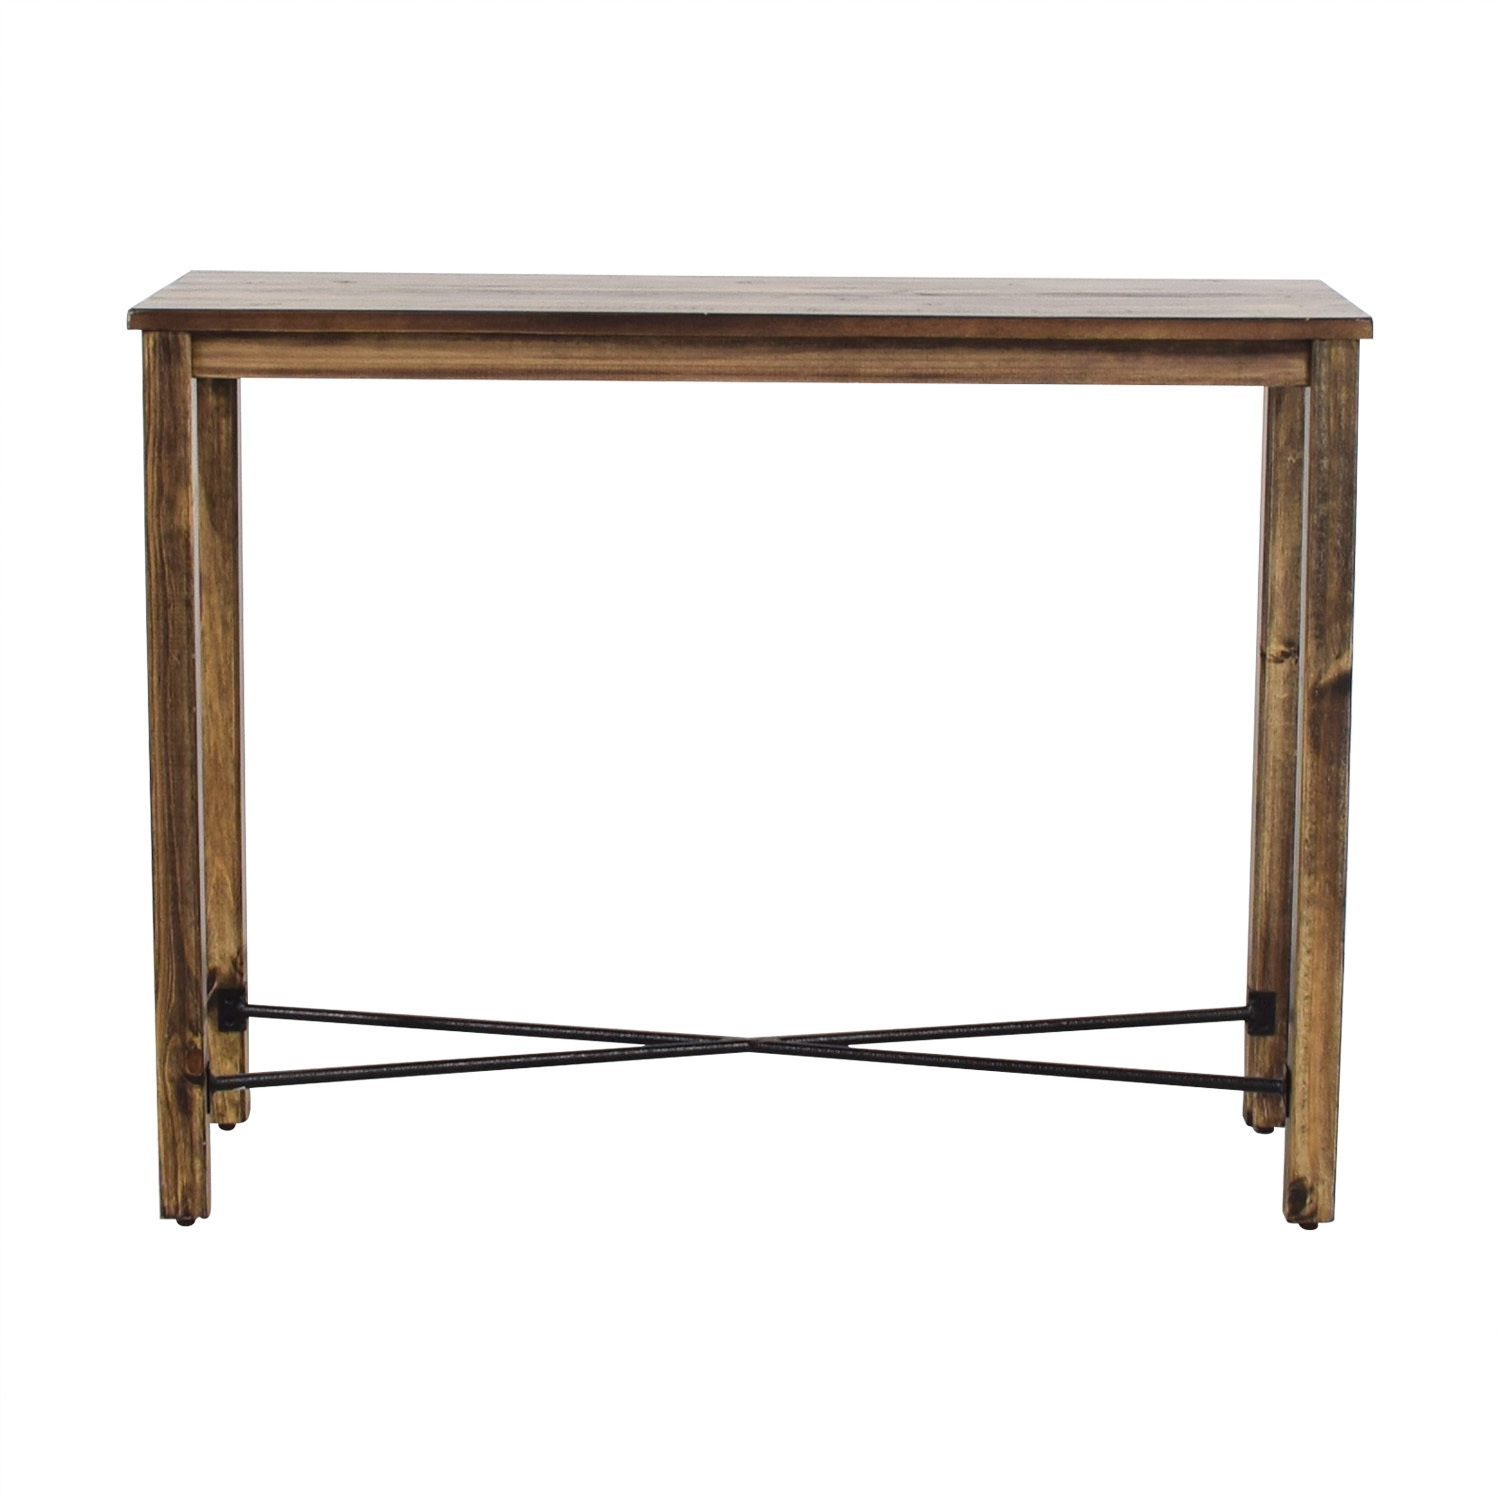 buy Iron Cross Bar Distressed Hardwood Console Table